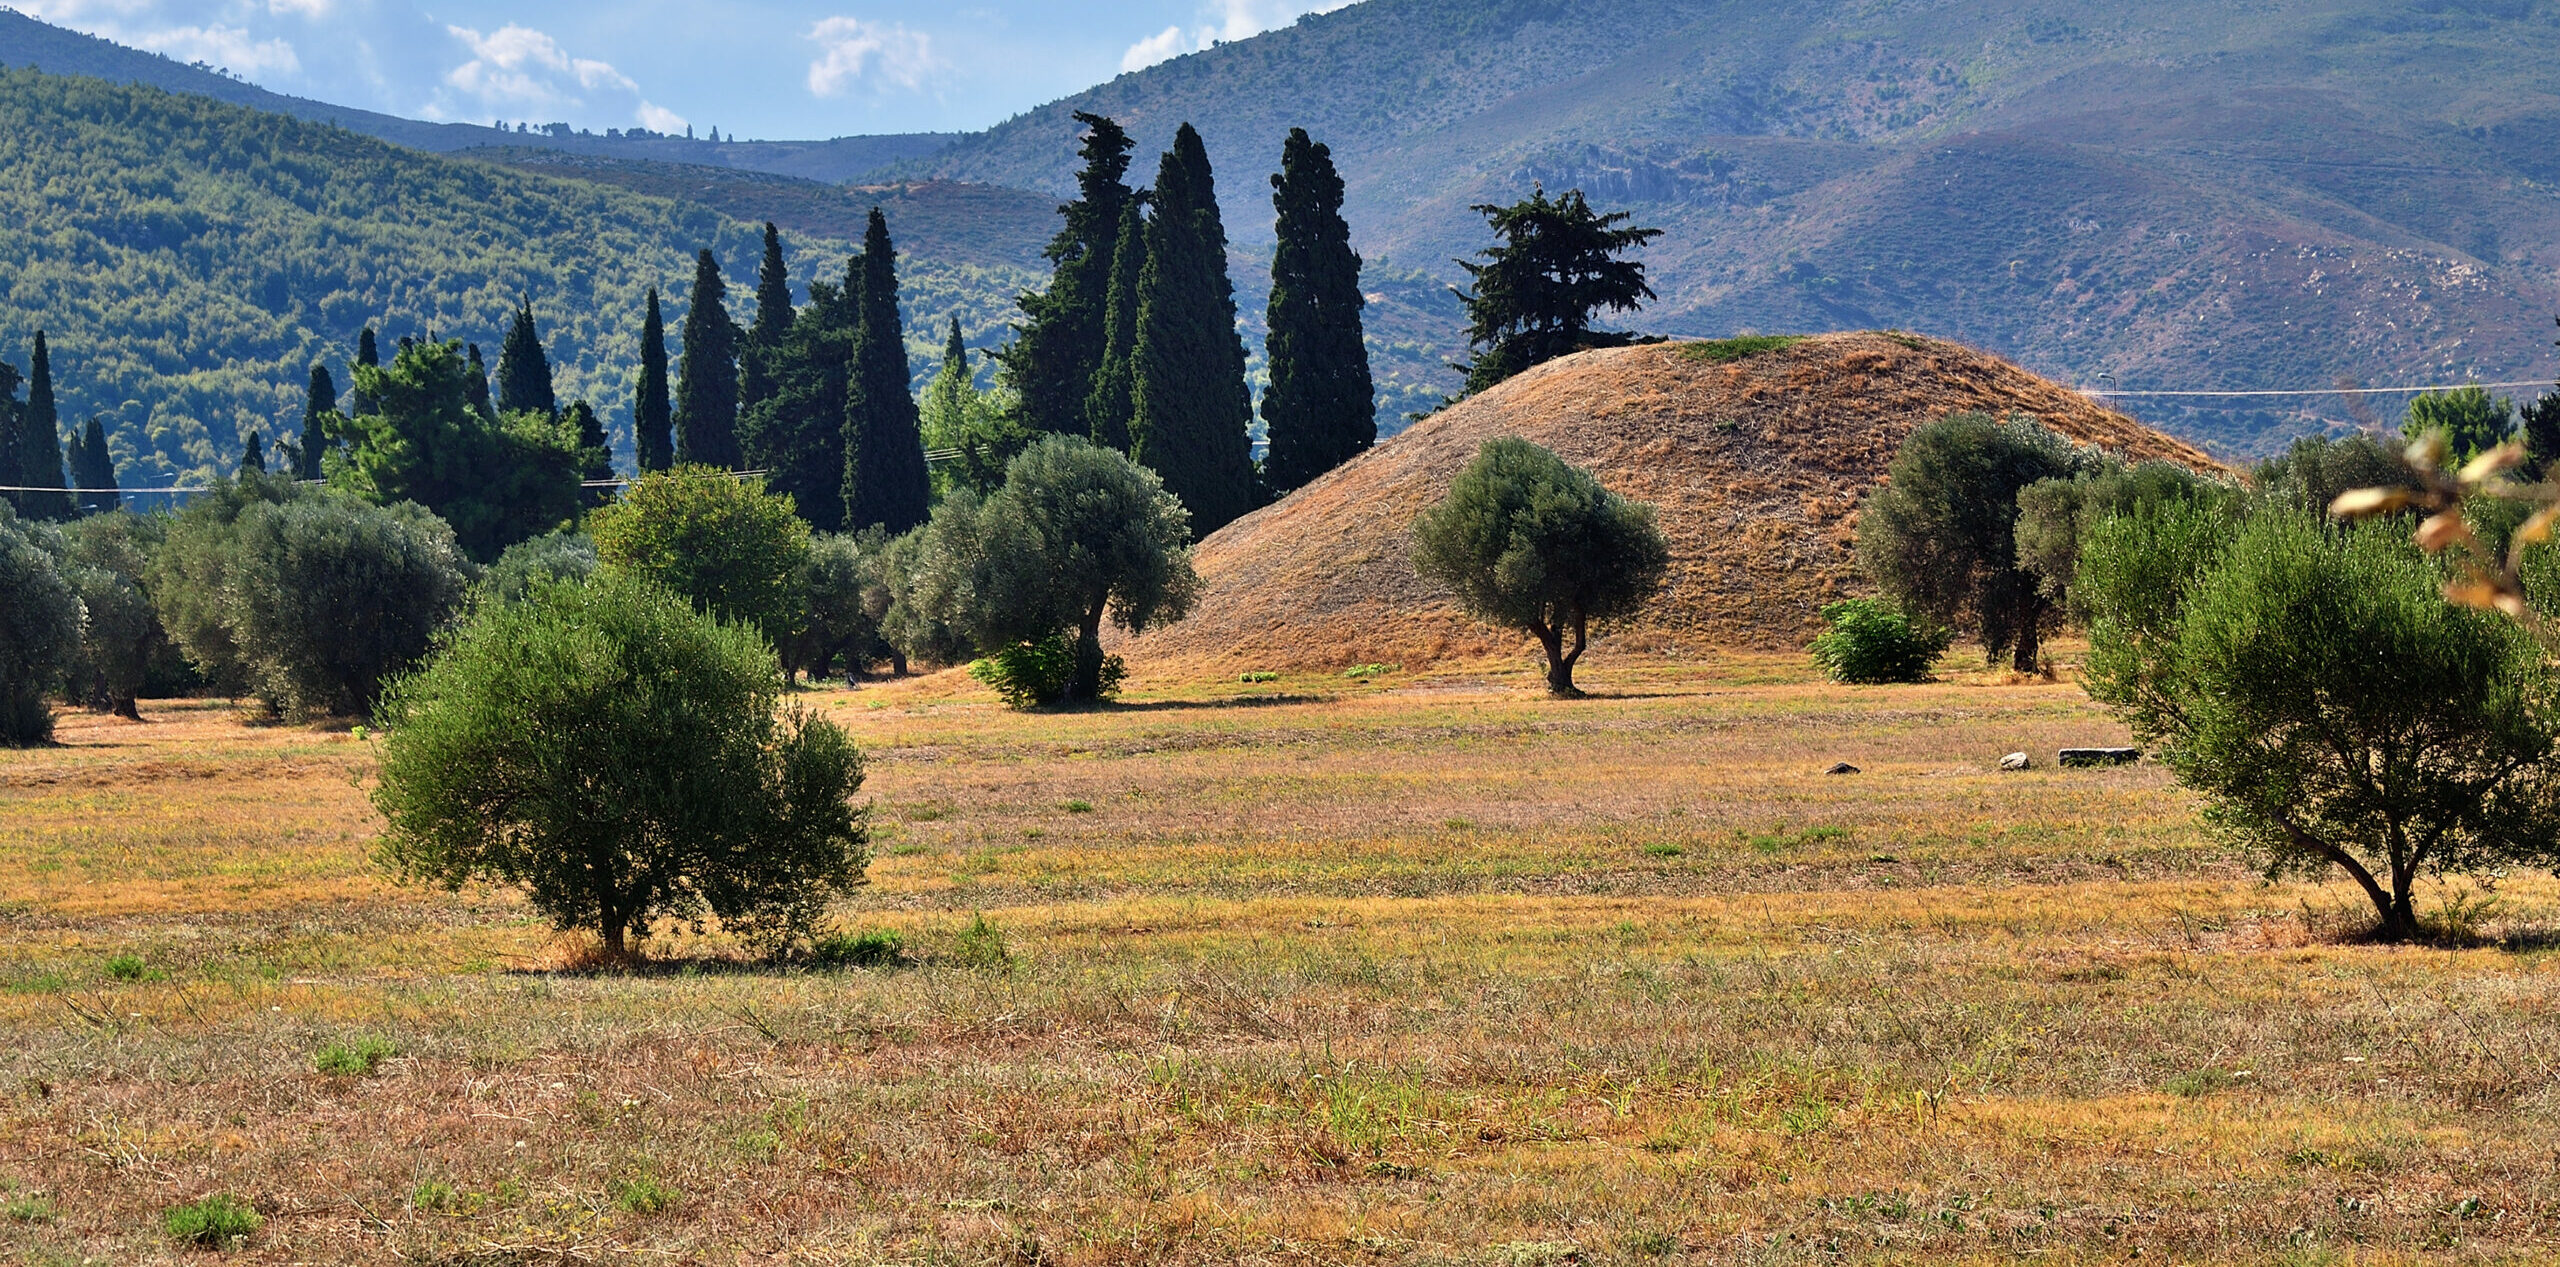 Marathon: The swamp that saved ancient Athens from the Persians